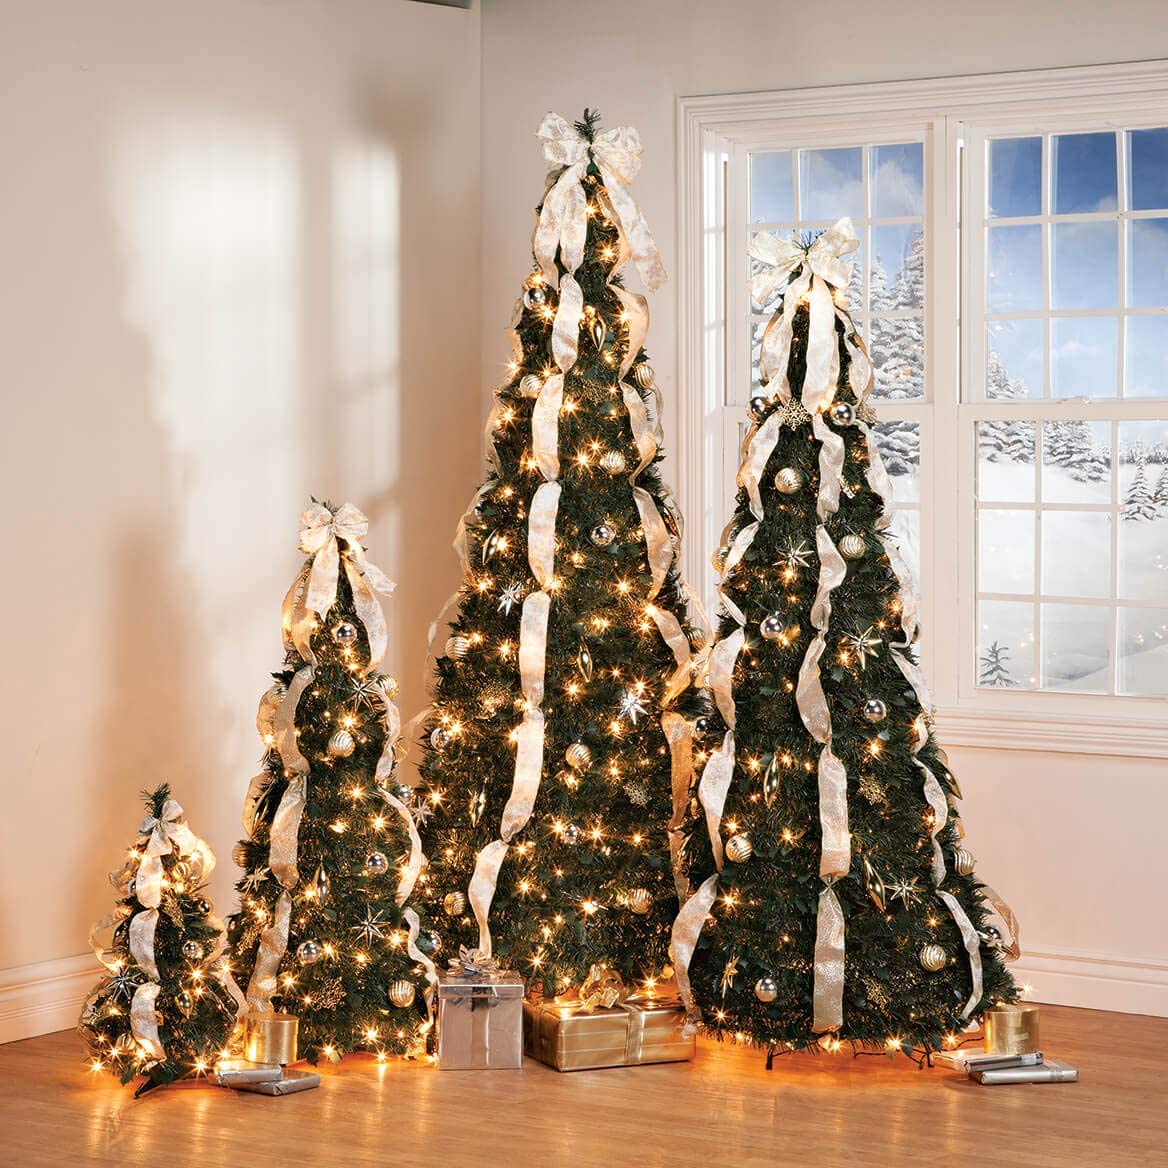 Pull-Up Christmas Trees, Pre-Lit And Fully Decorated